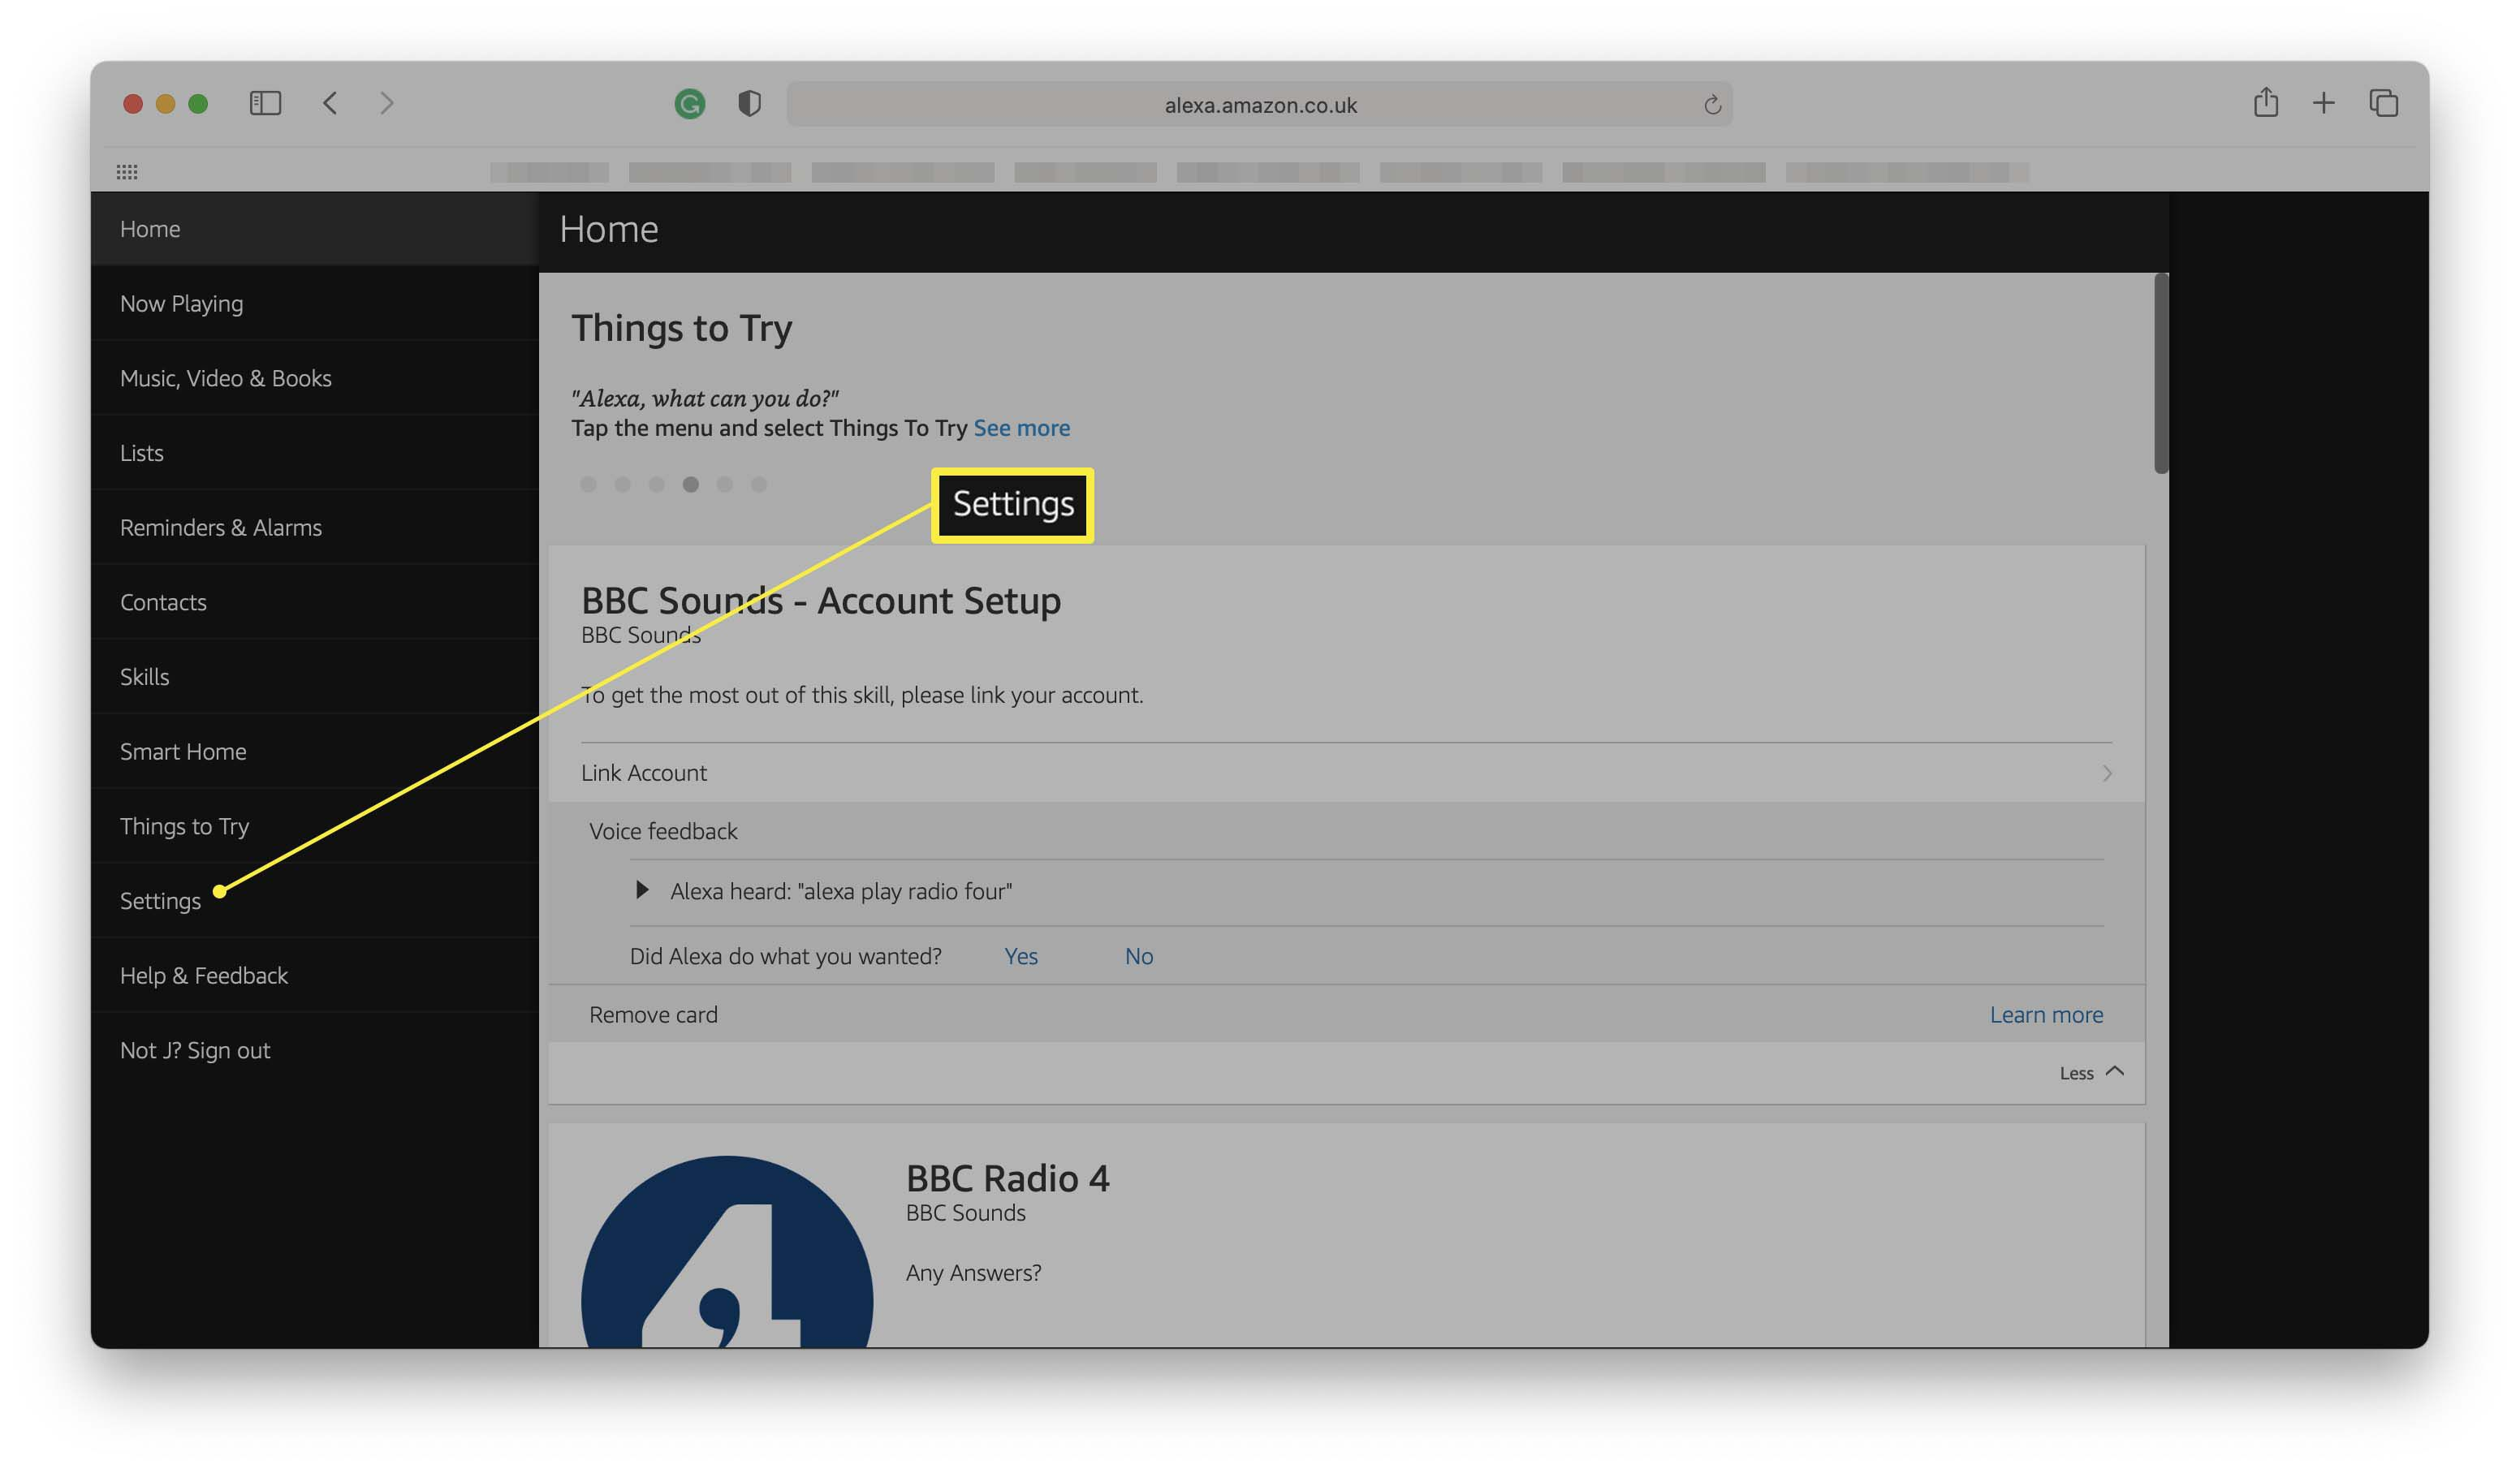 Alexa website with Settings highlighted